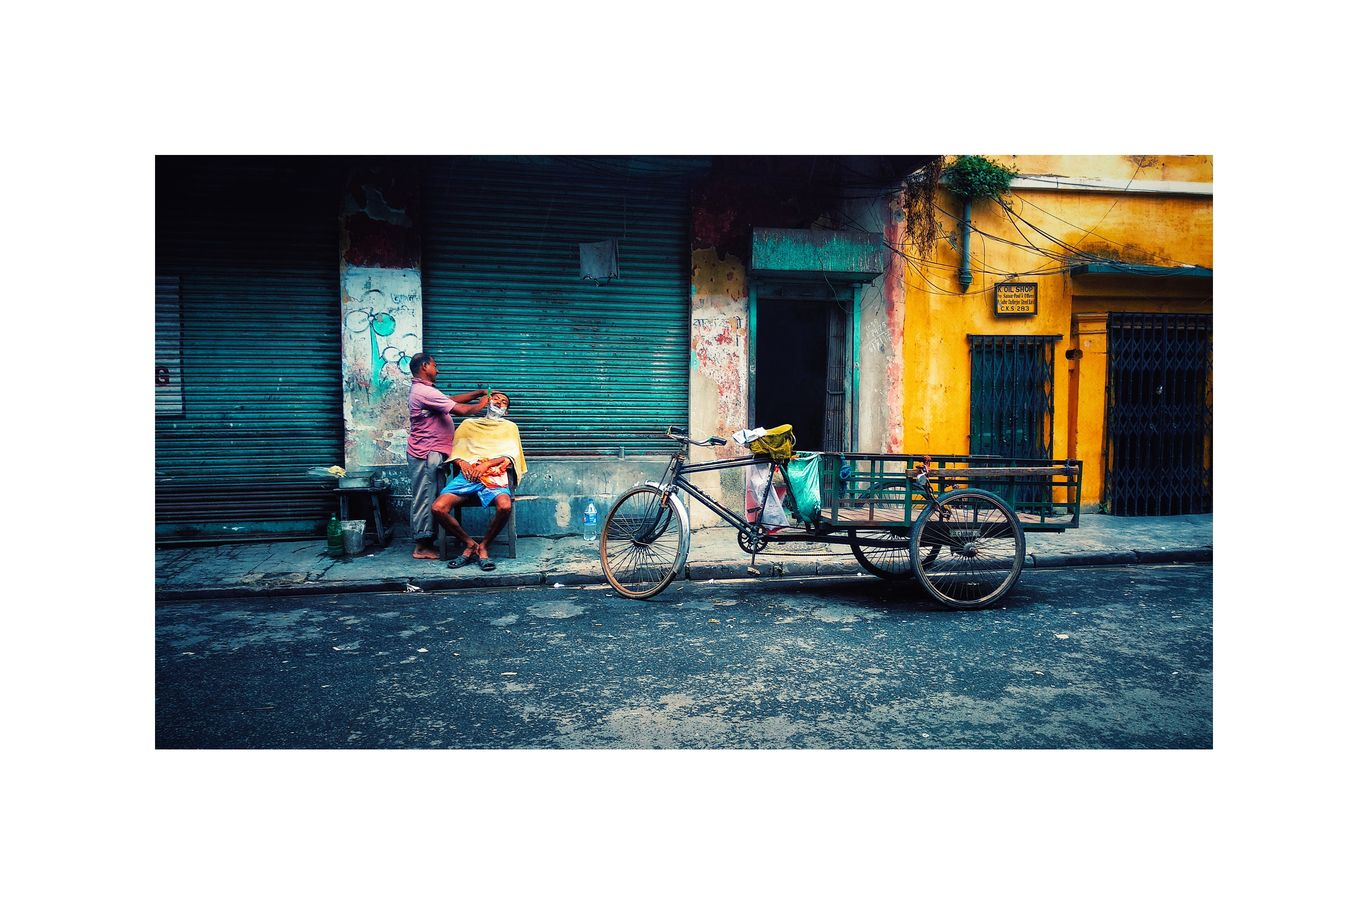 Photo of Kolkata By Arindam Chowdhury